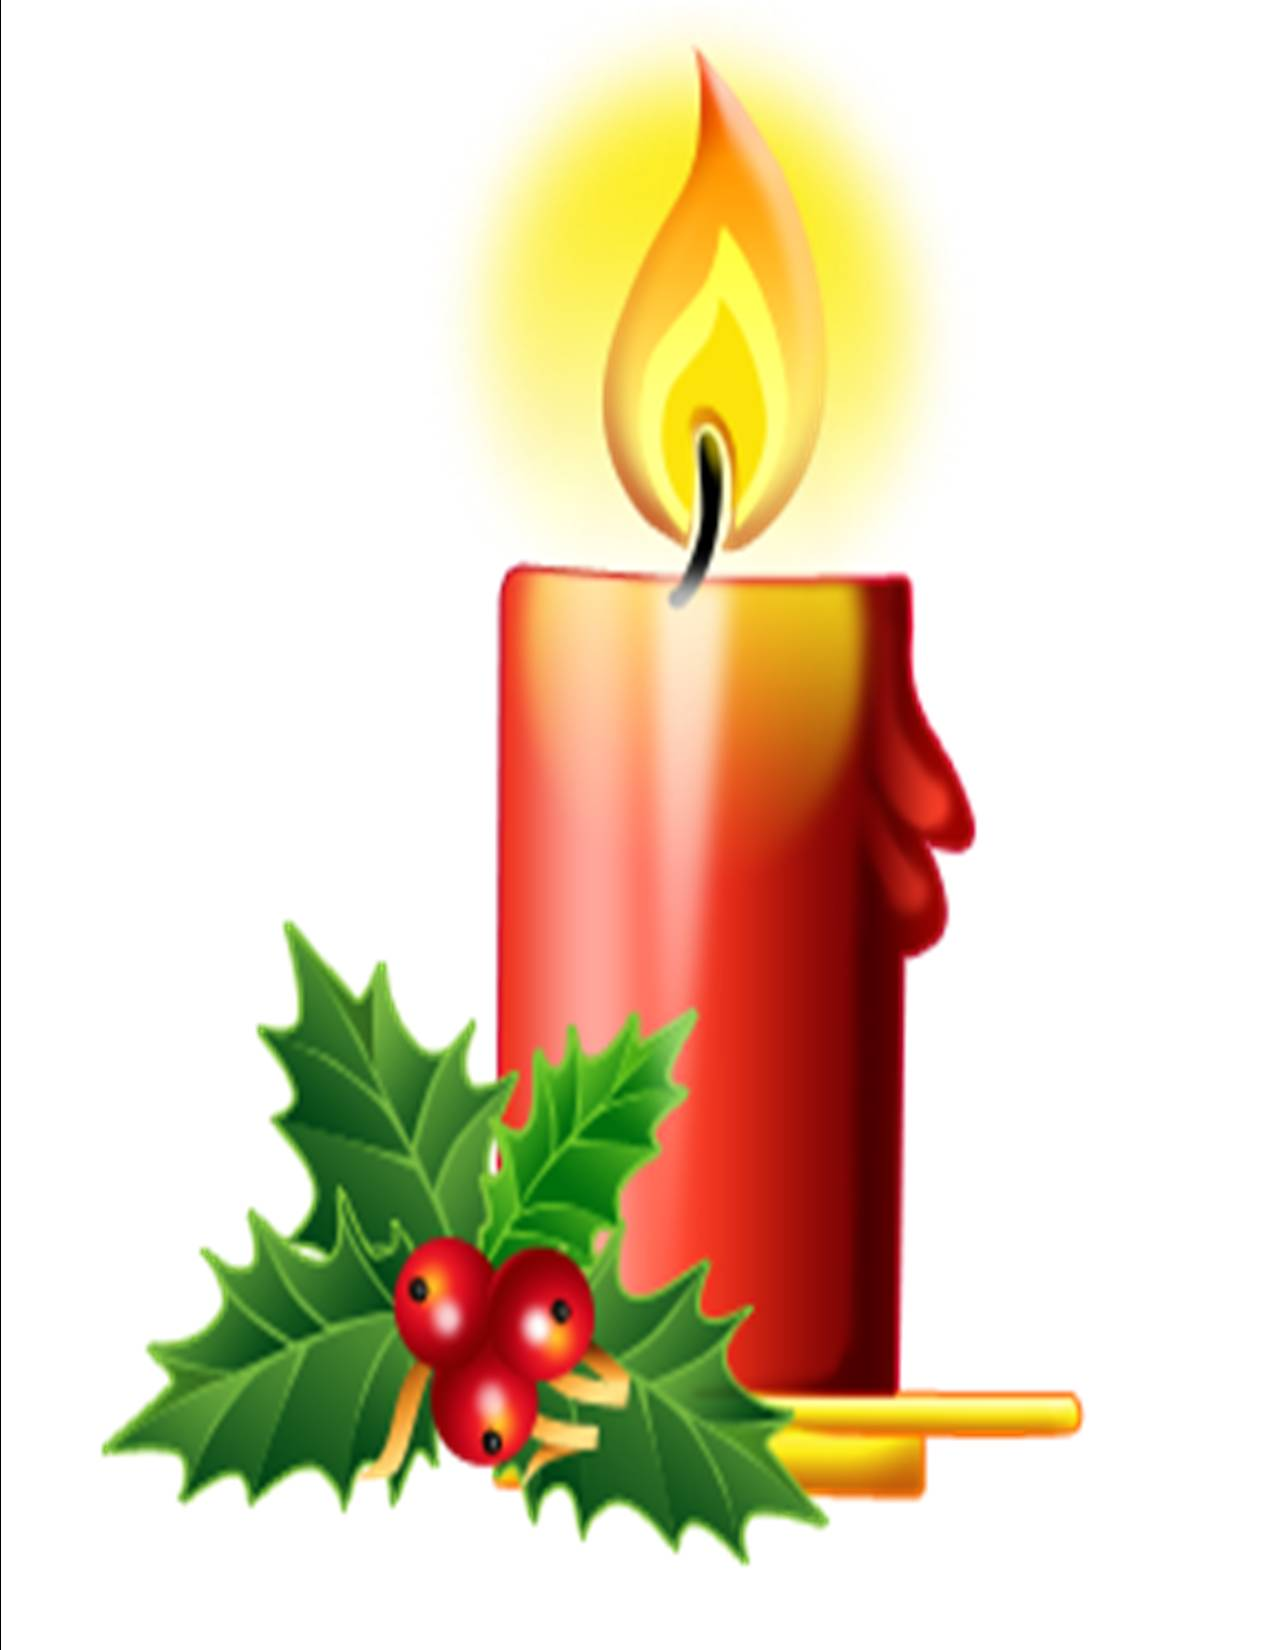 Advent wreath clipart tif clipart images gallery for free.